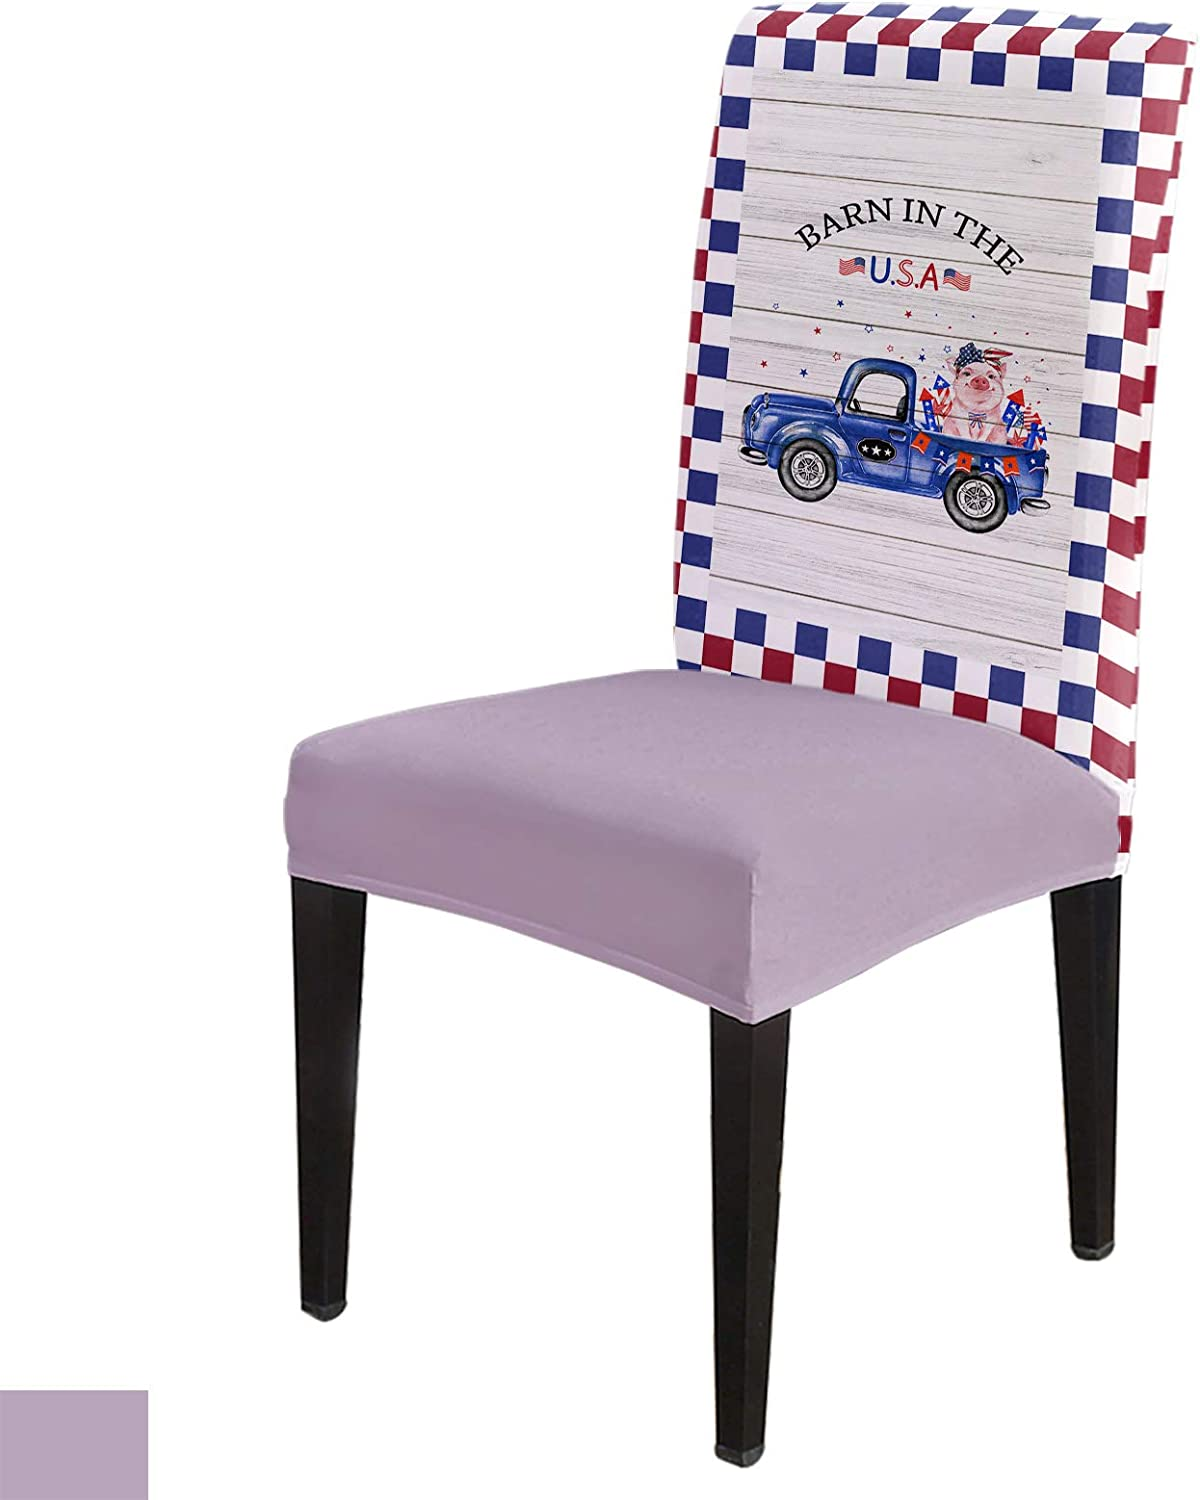 Stretch Chair Covers for Dining 6 Removable Room Set of 40% OFF Indianapolis Mall Cheap Sale